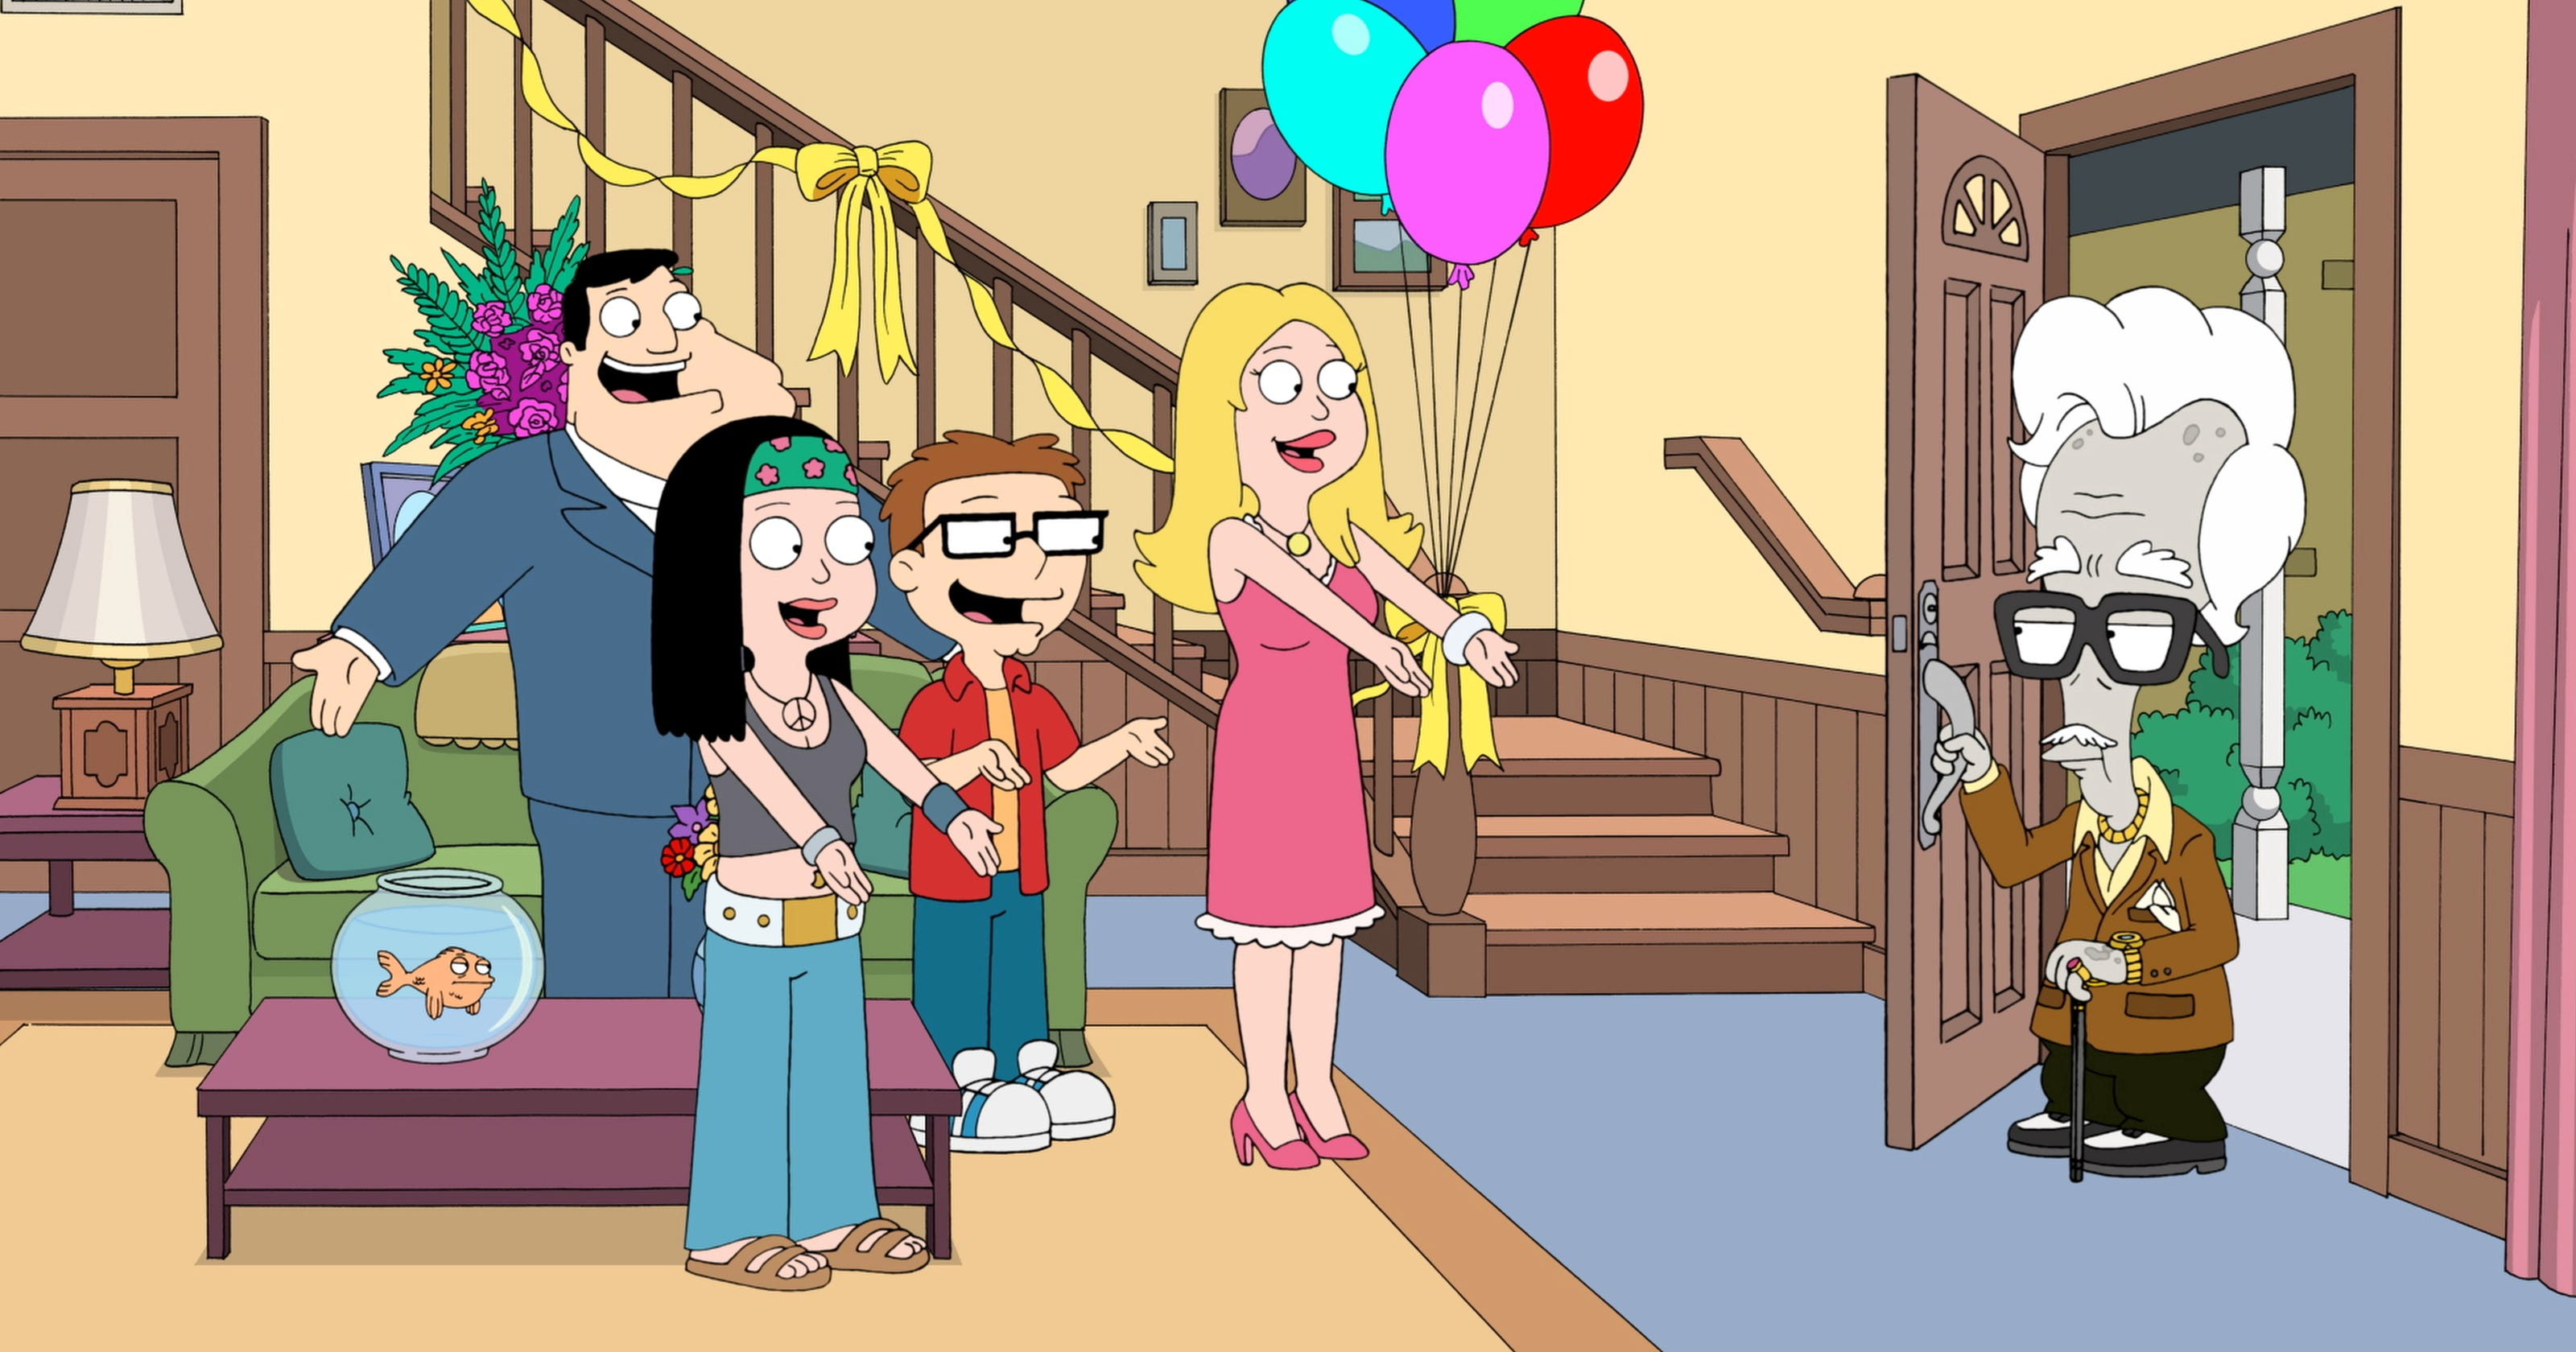 American Dad! will jump to TBS for Season 11 in 2014